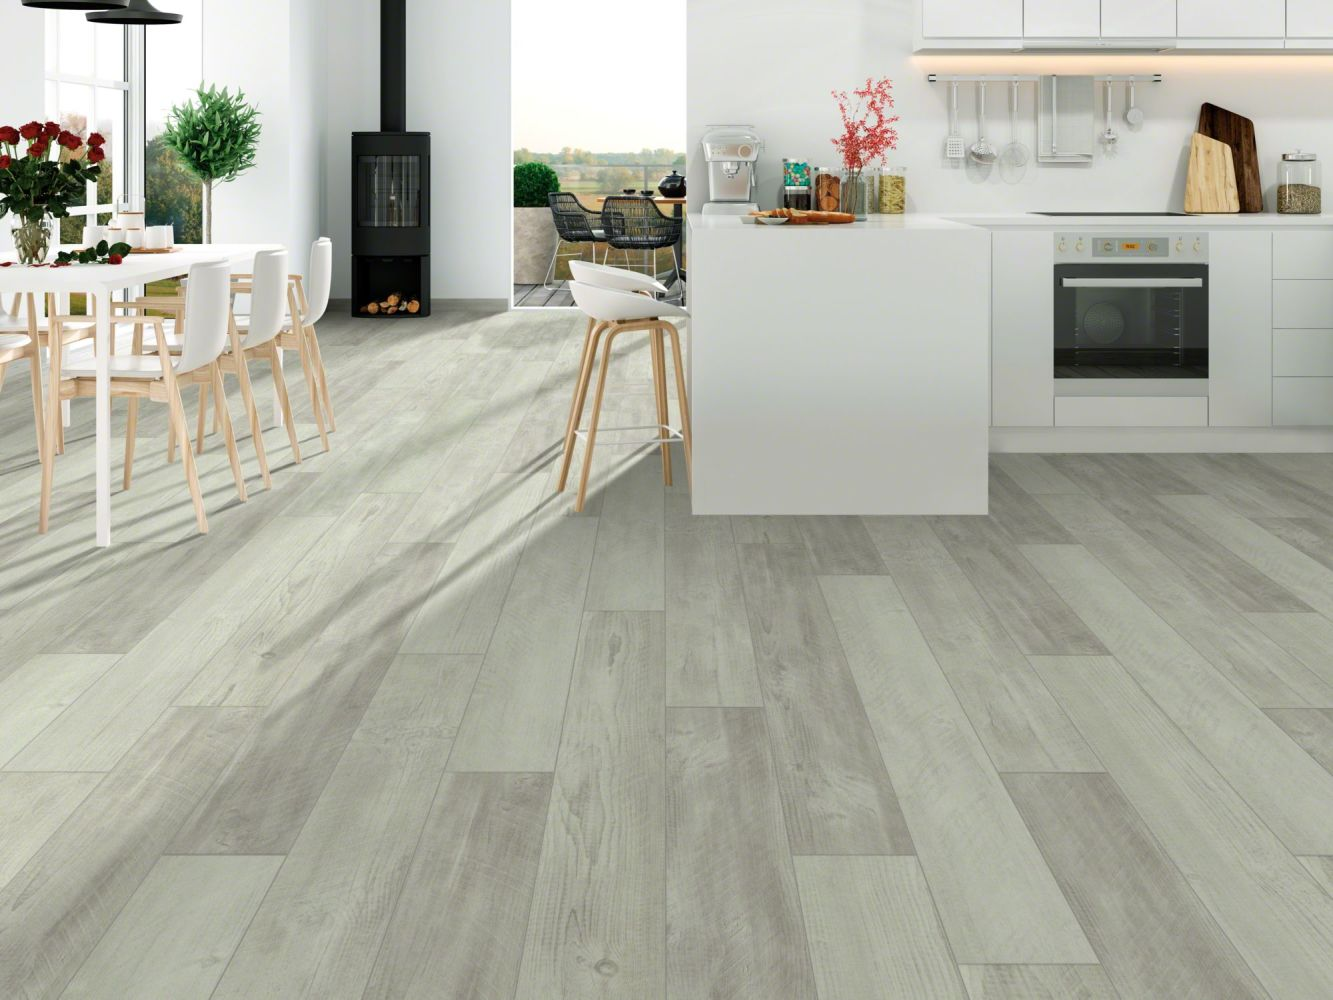 Shaw Floors Vinyl Residential Intrepid HD Plus Distressed Pine 00164_2024V